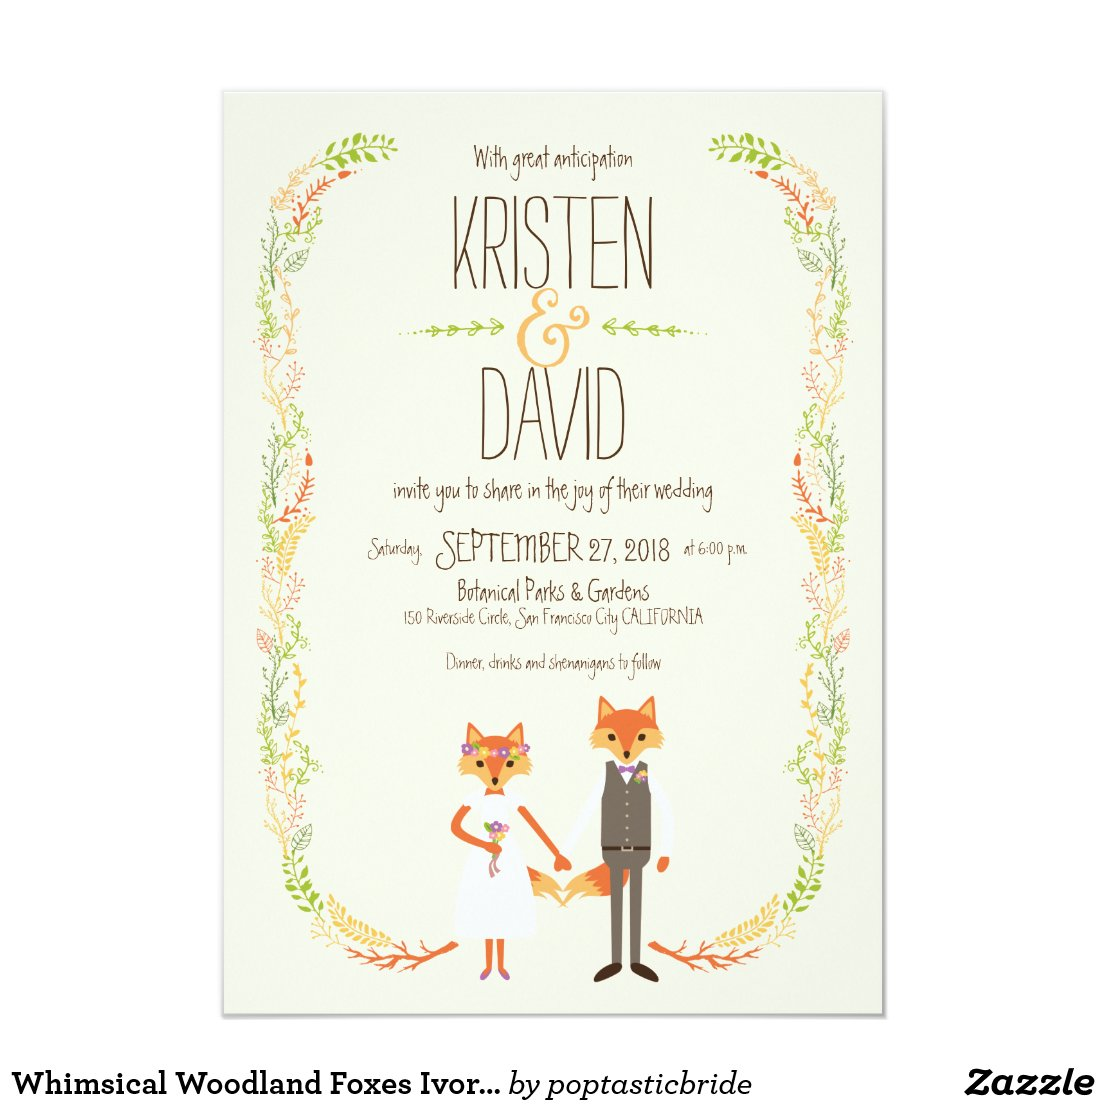 Whimsical Woodland Foxes Ivory Wedding